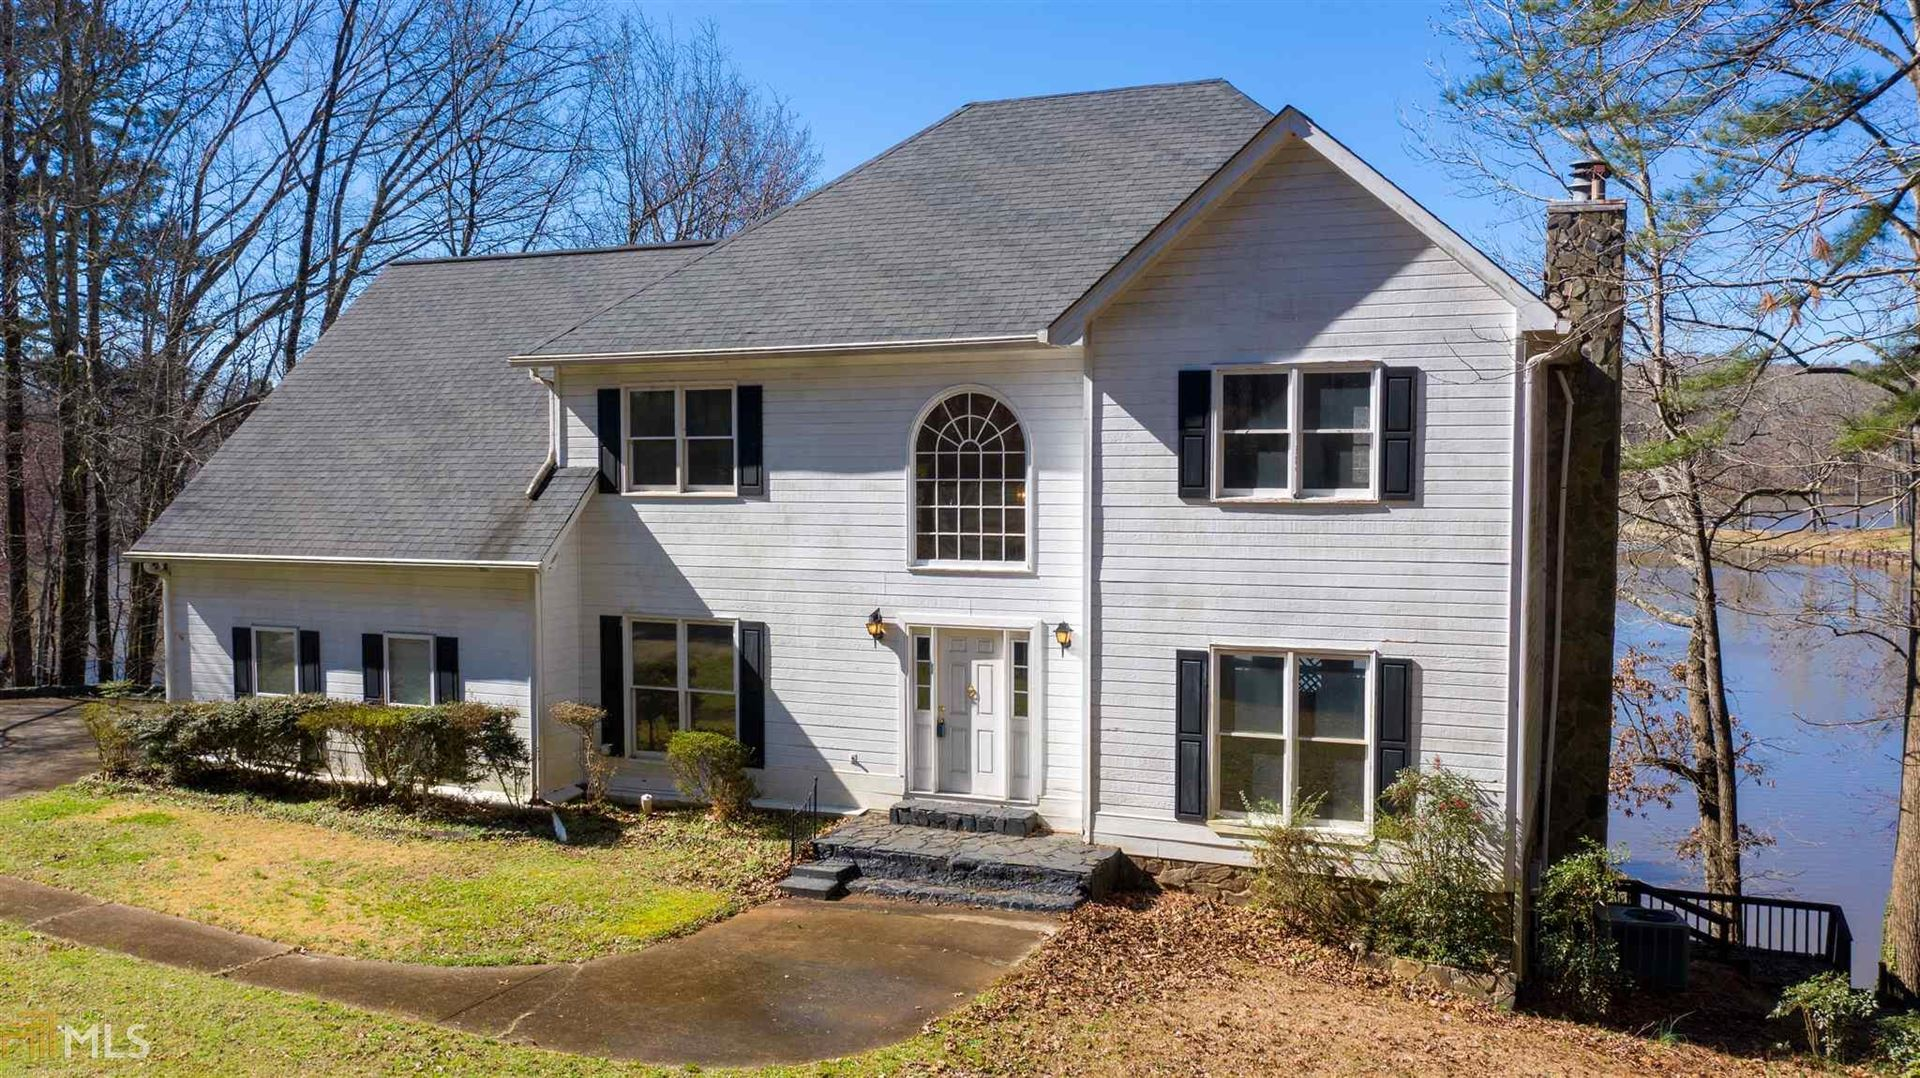 200 Old Mill Ct, Fayetteville, GA 30214 - #: 8937385